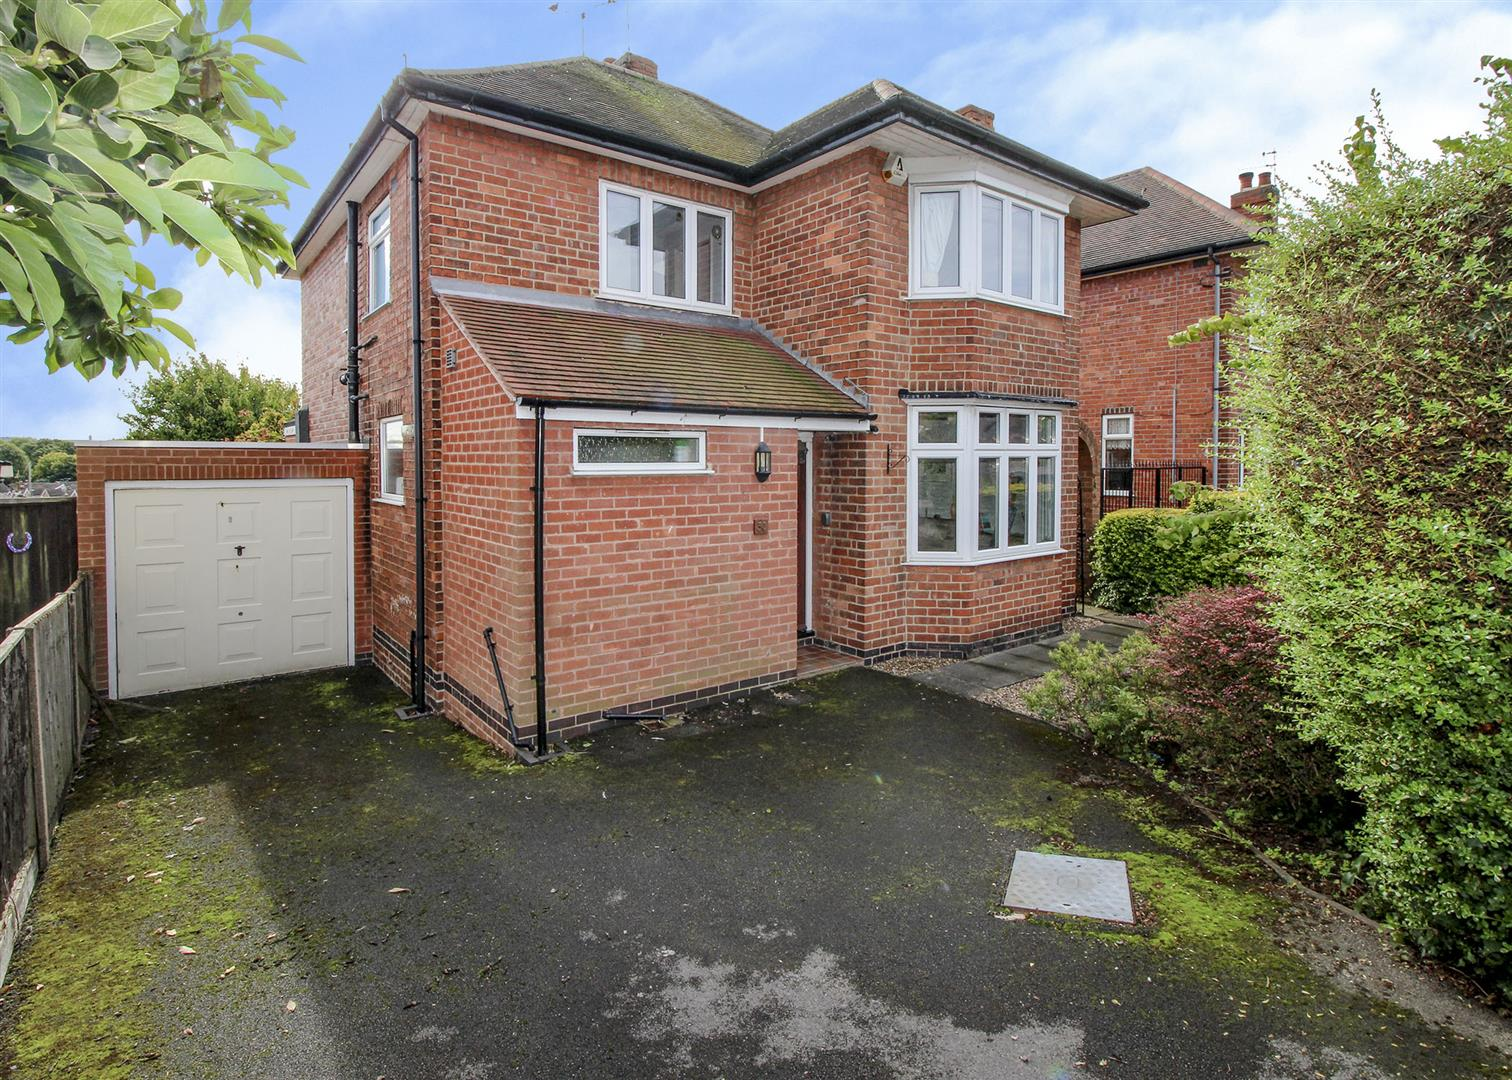 3 Bedrooms Detached House for sale in Hurts Croft, Chilwell